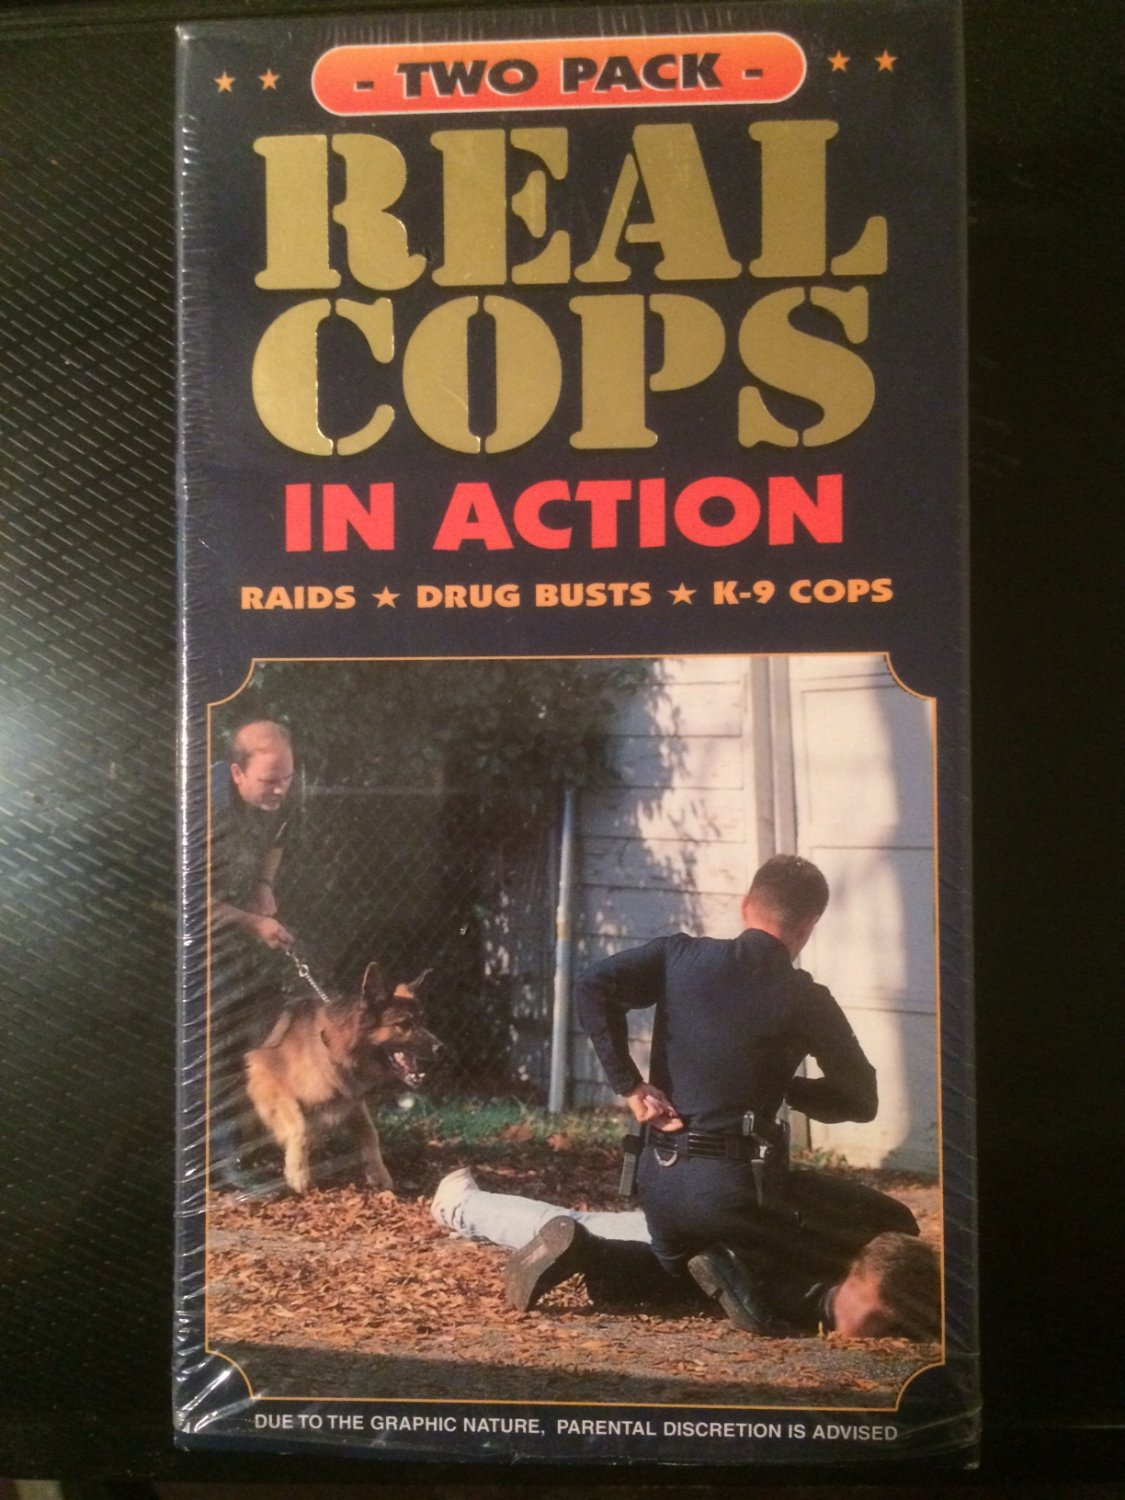 VHS - Real Cops in Action (2 Tapes) - Used - NOT ON DVD!